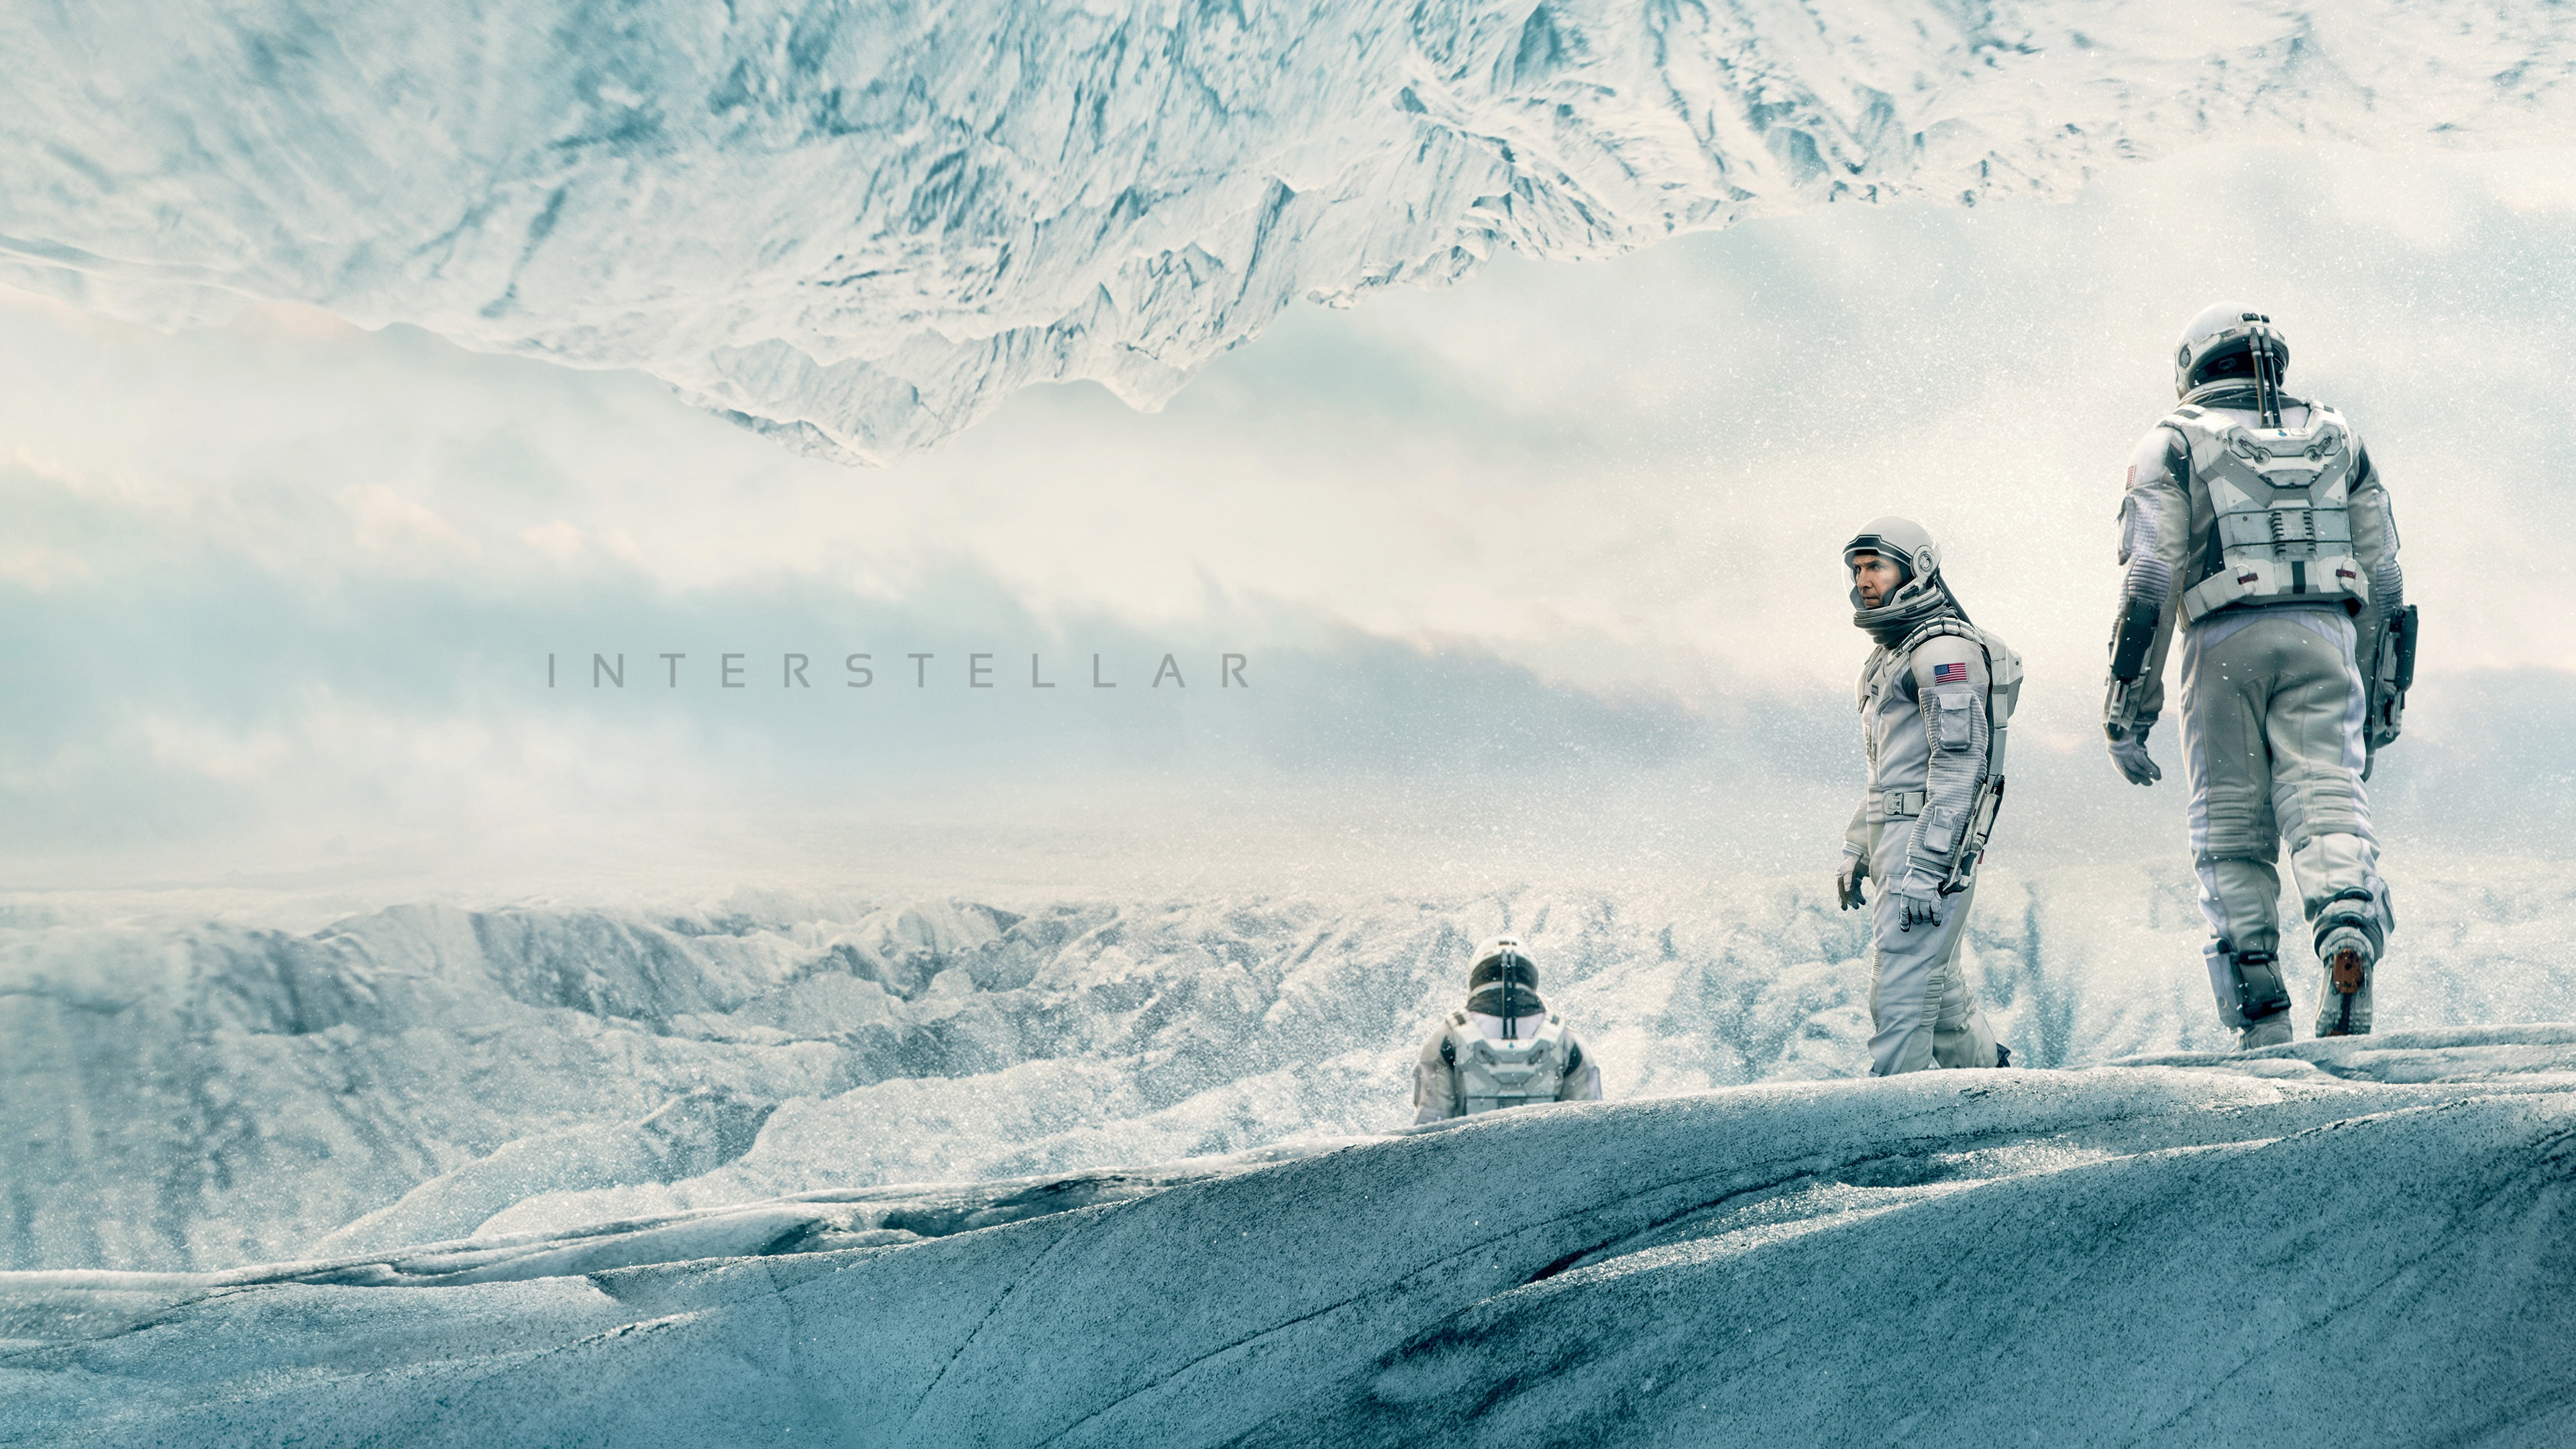 Interstellar 2014 Wallpapers HD Wallpapers 3840x2160